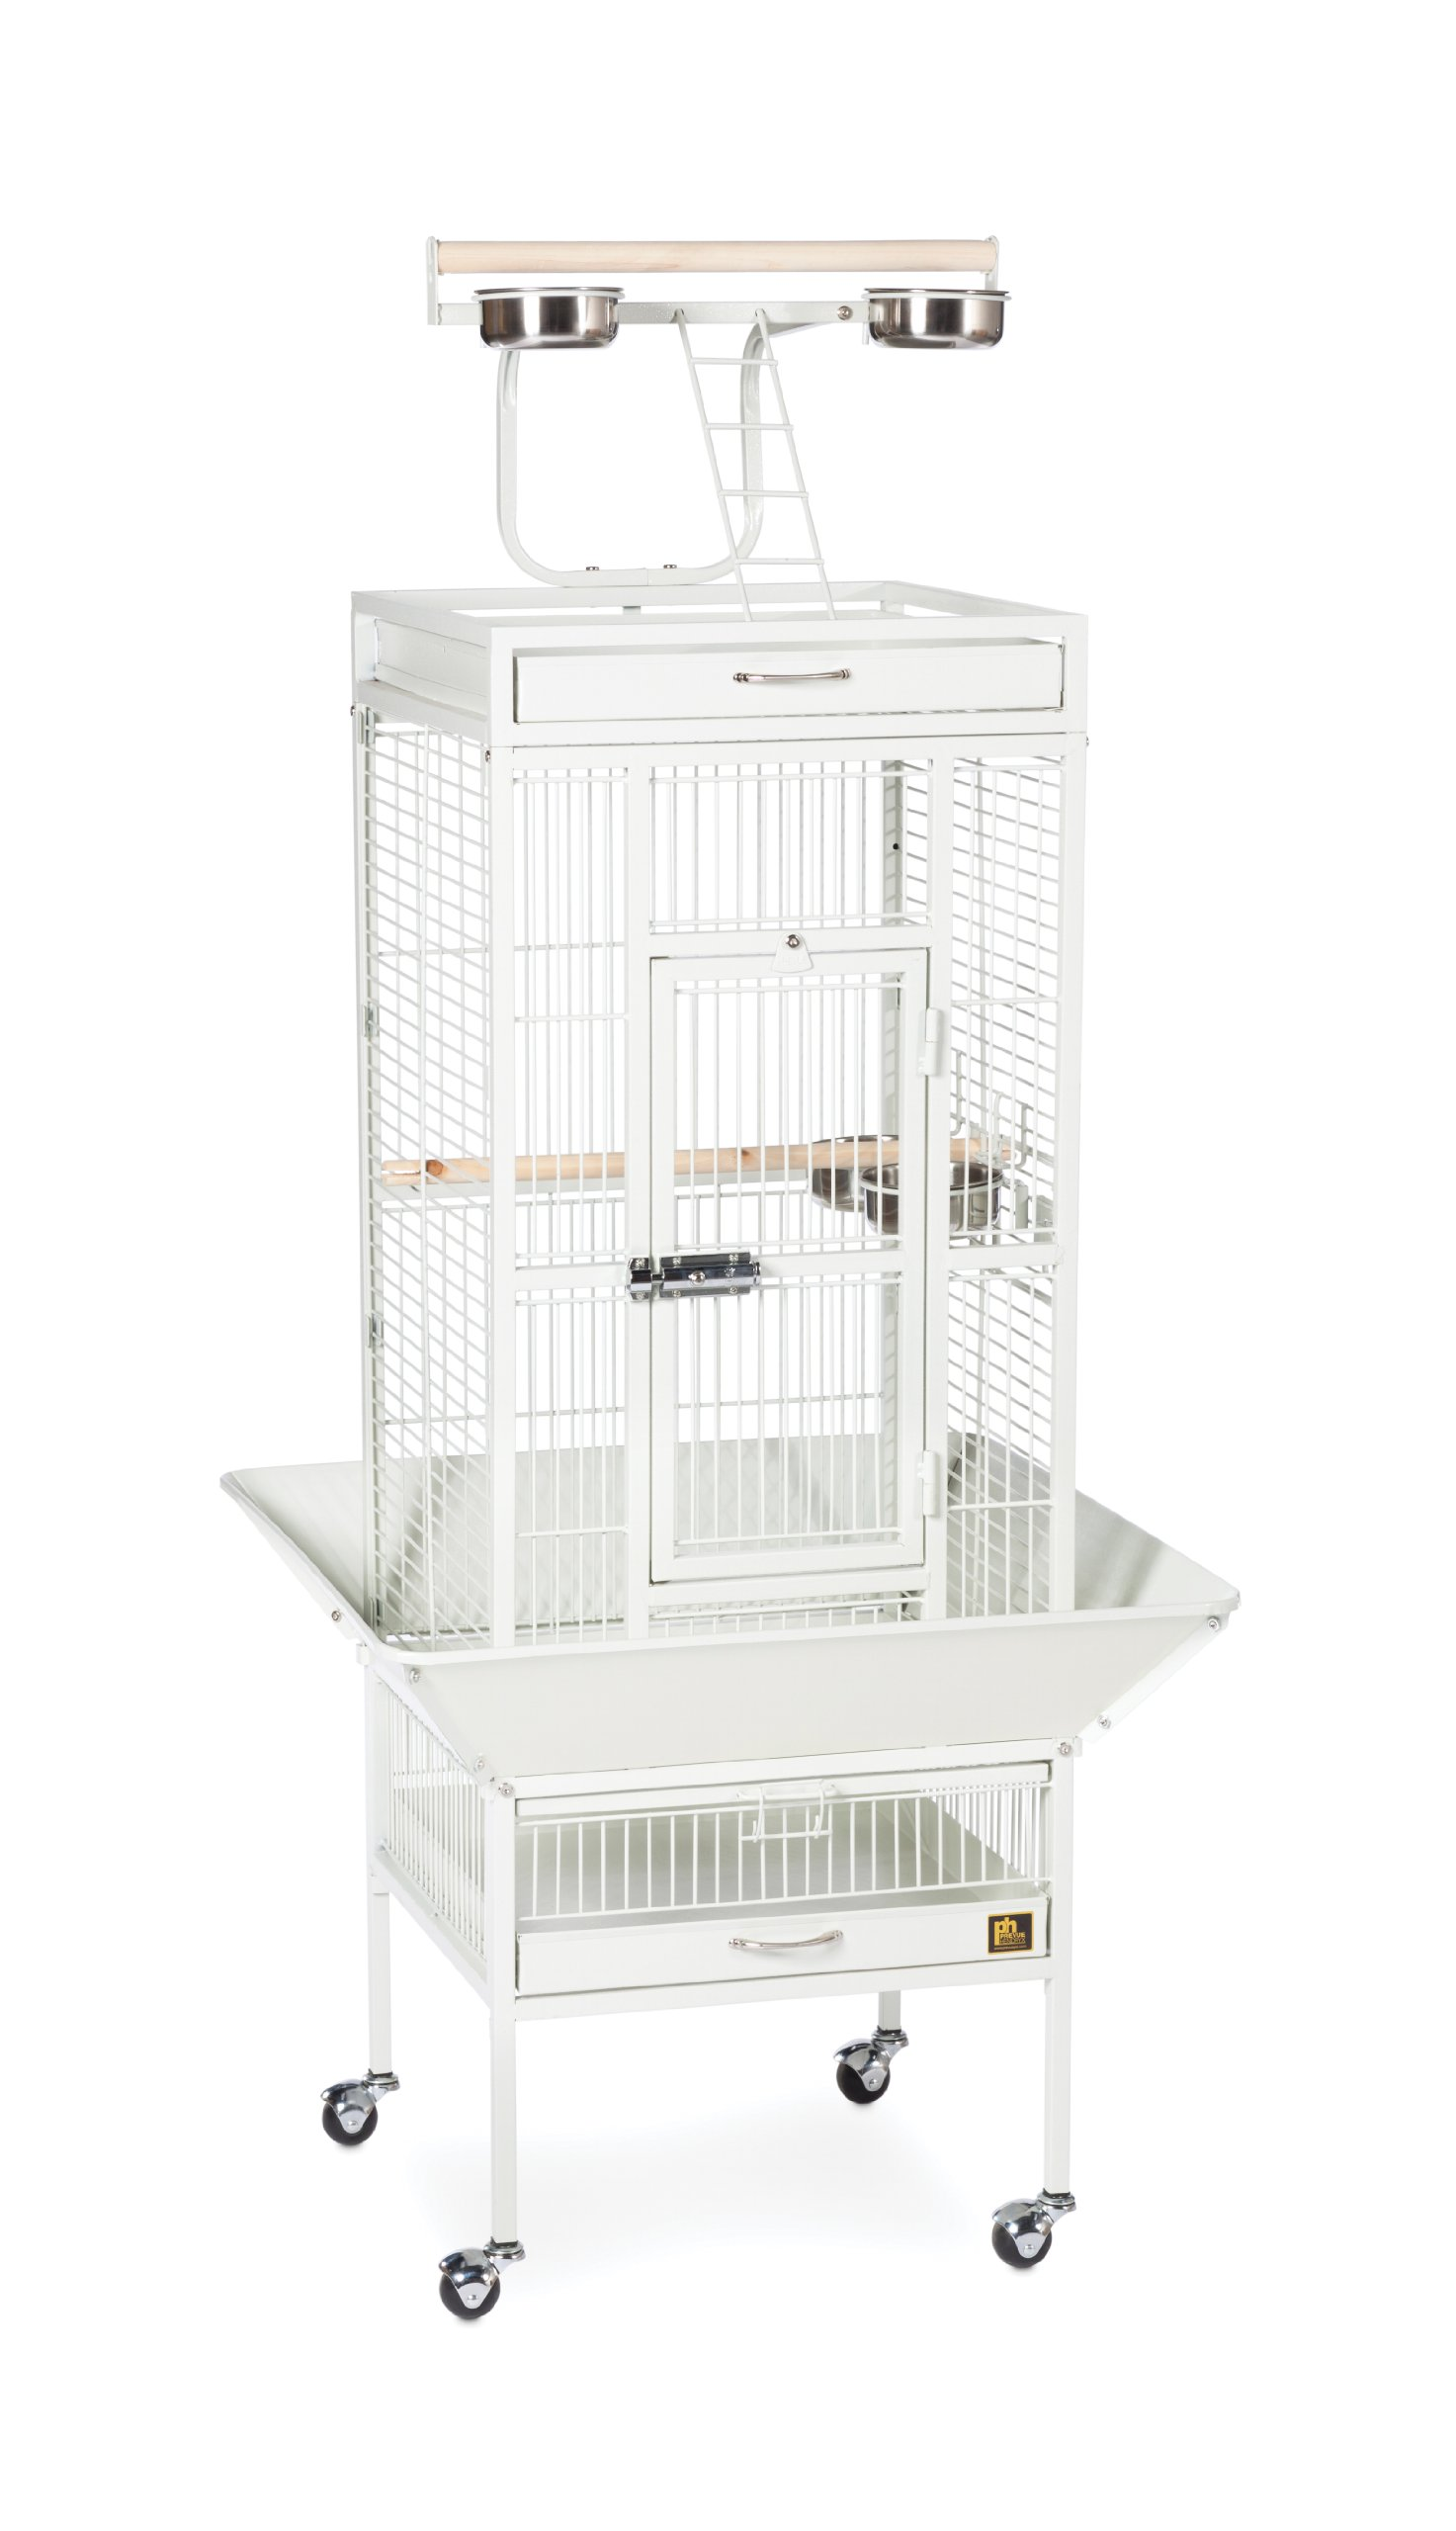 Prevue Hendryx 3151C Pet Products Wrought Iron Select Bird Cage, Chalk White by Prevue Hendryx